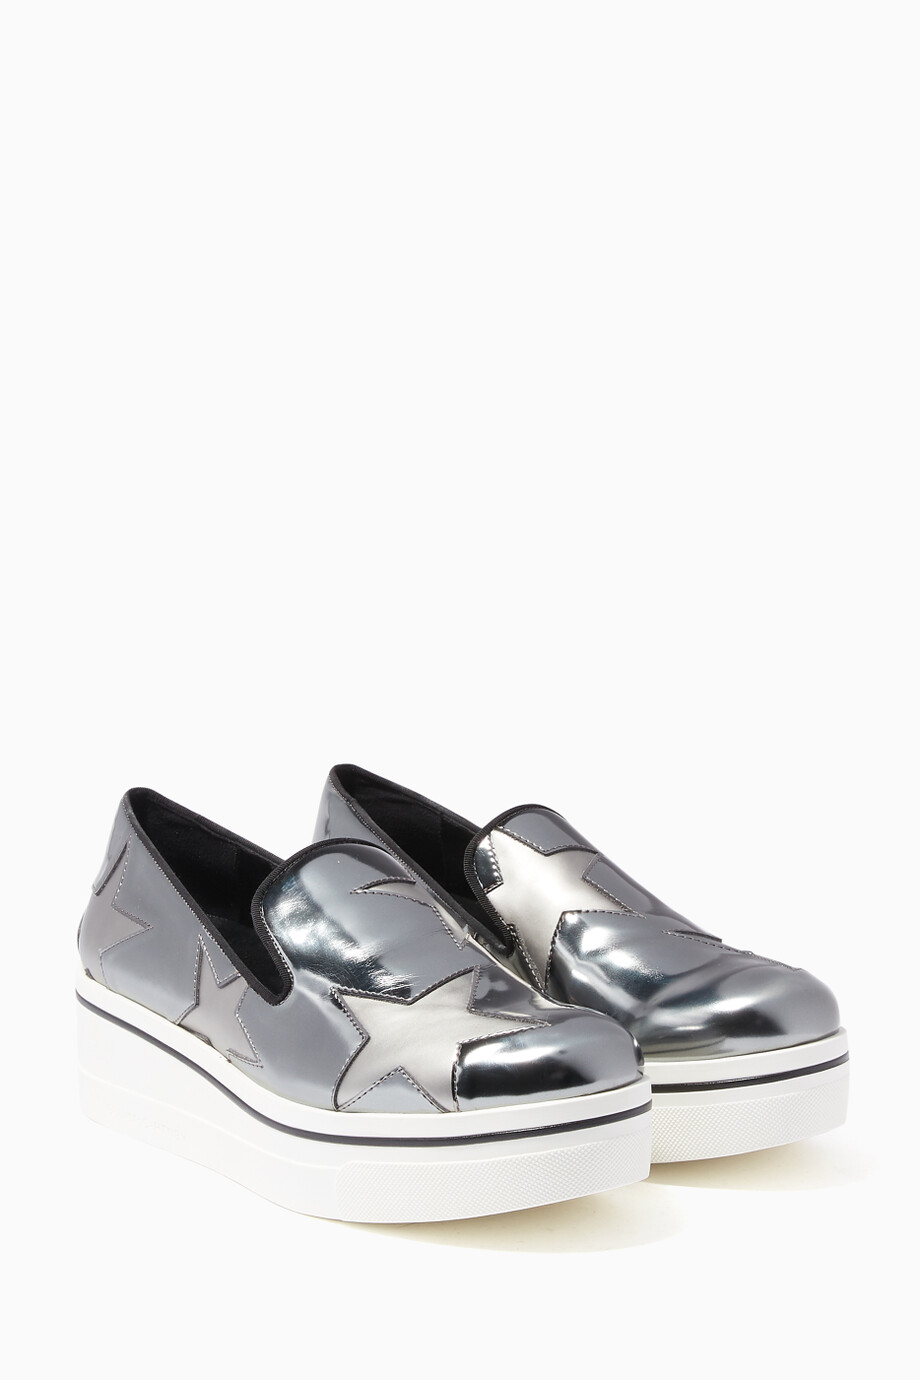 80f4b407e27 Shop Stella McCartney Silver Indium Star Binx Loafers for Women ...